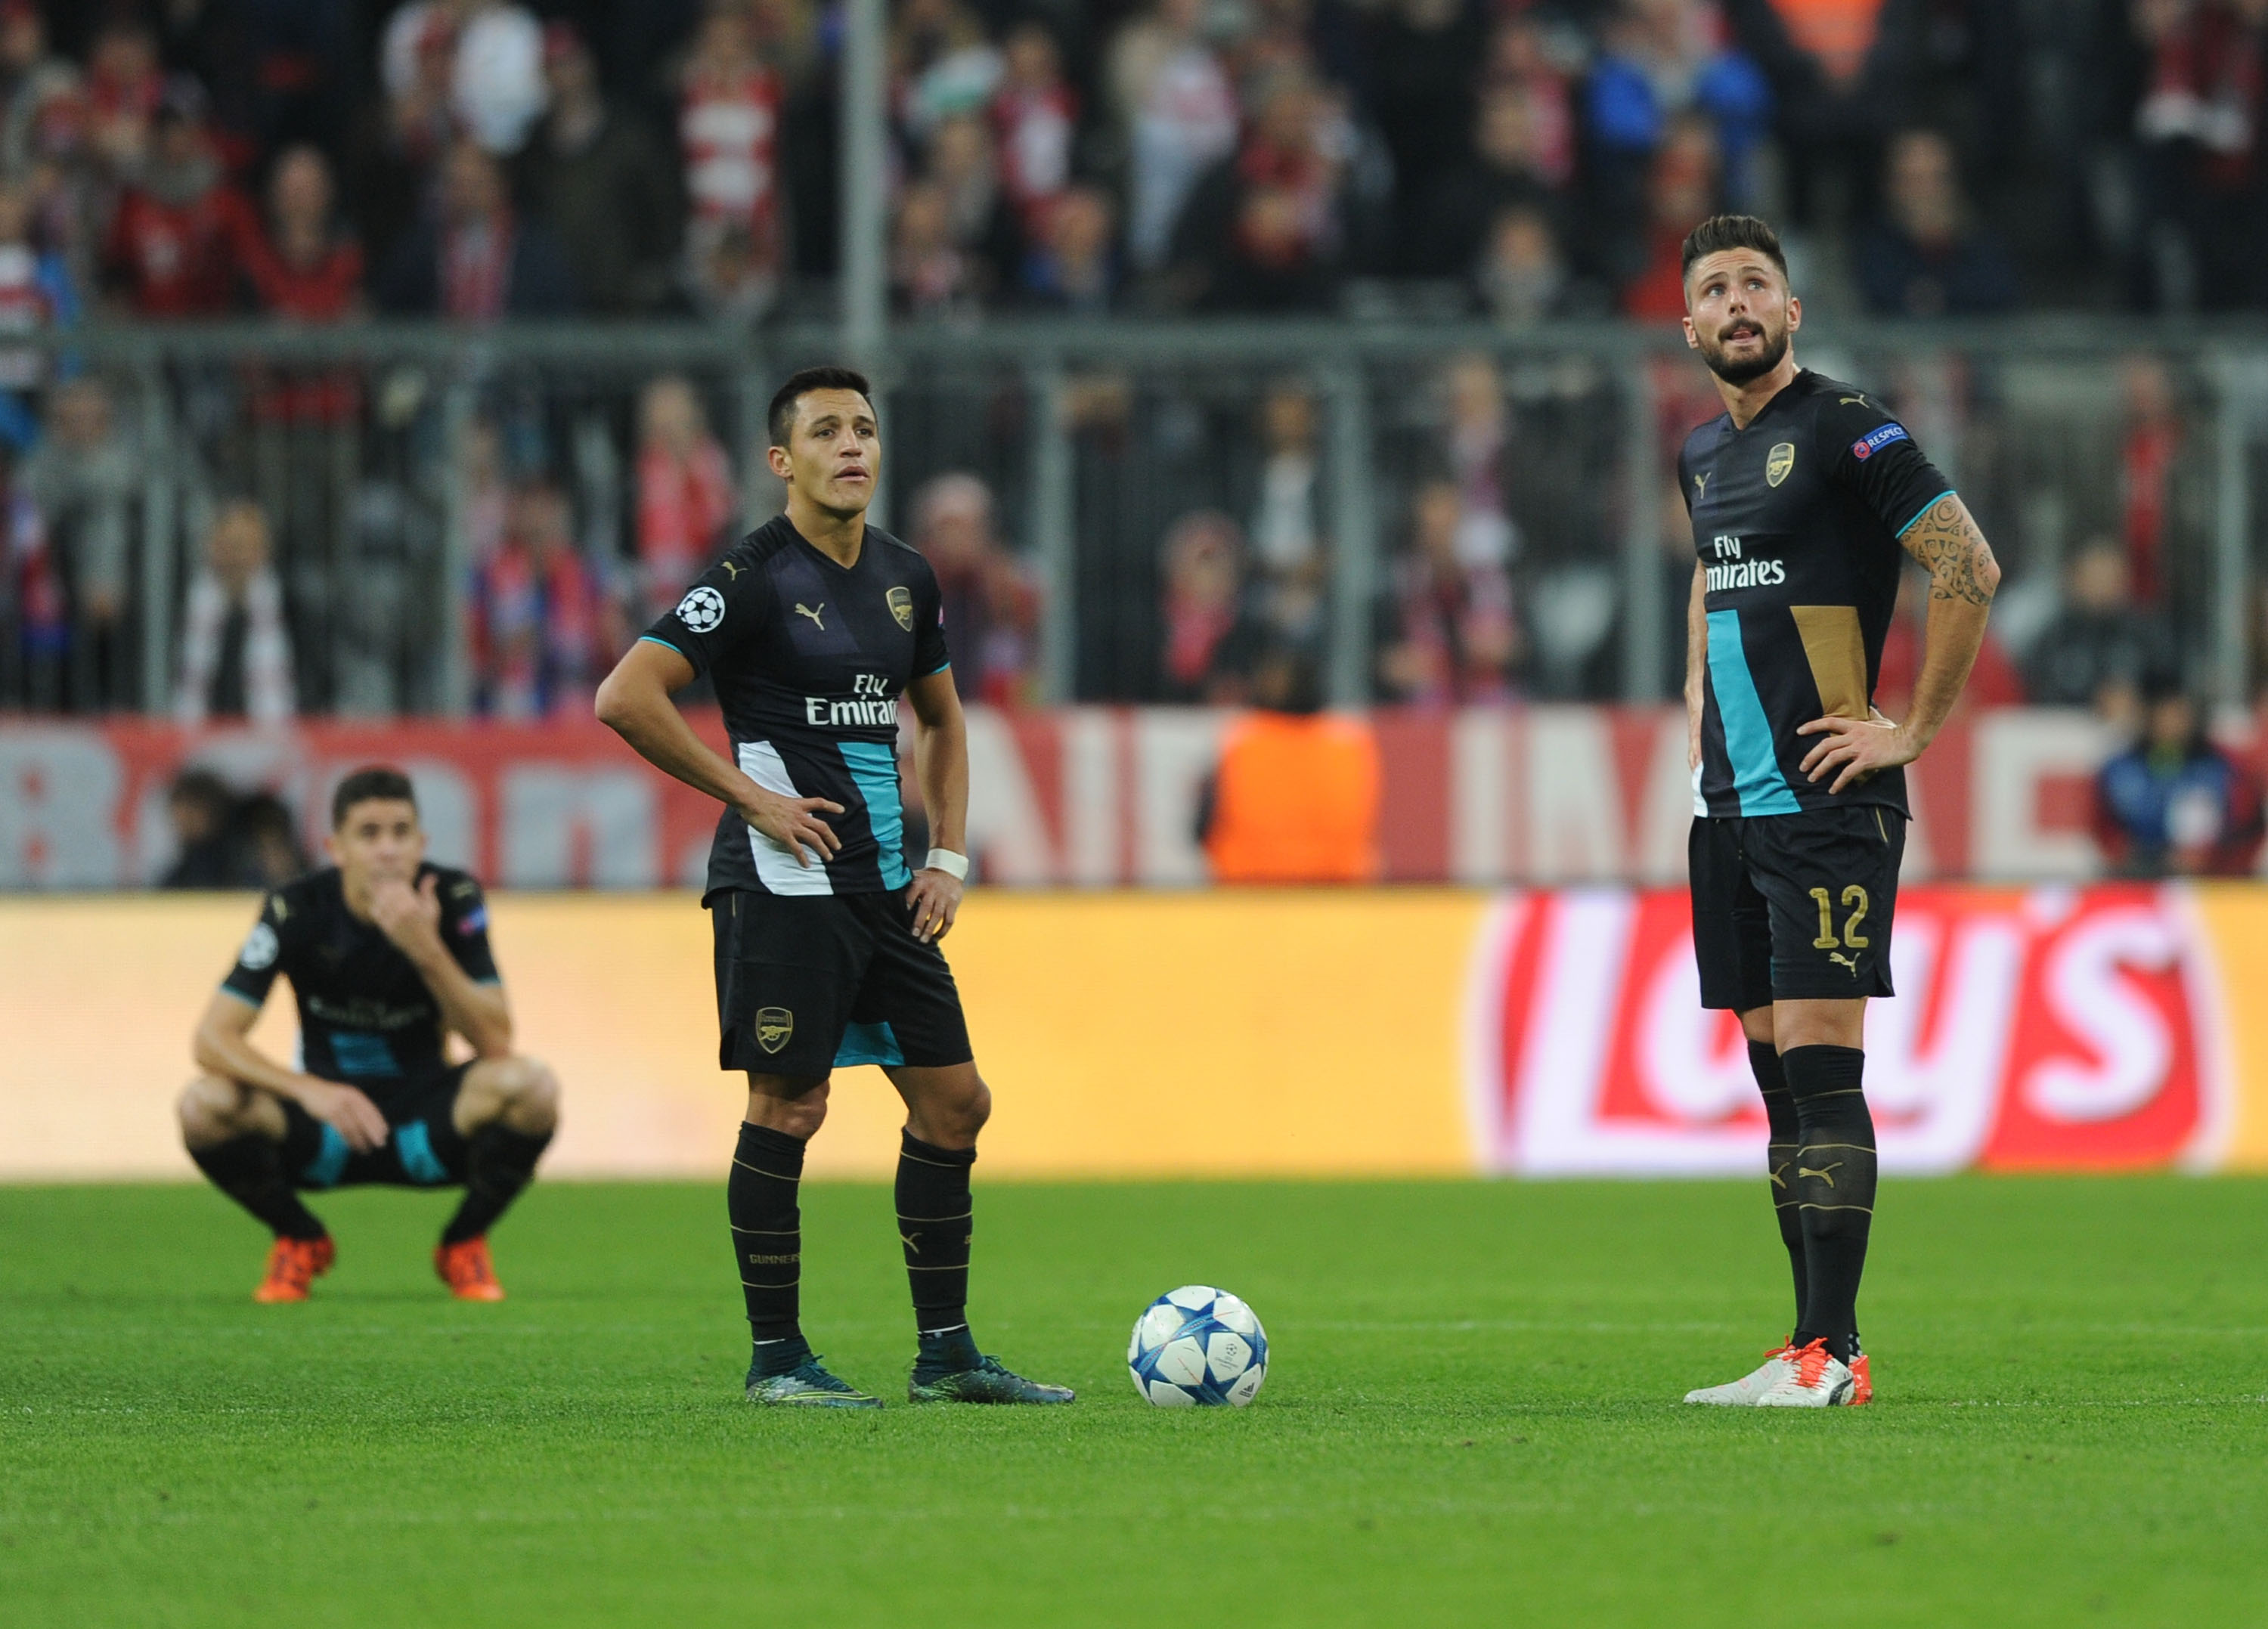 Would it really be all doom and gloom if Arsenal don't make it through the Champions League group stage?